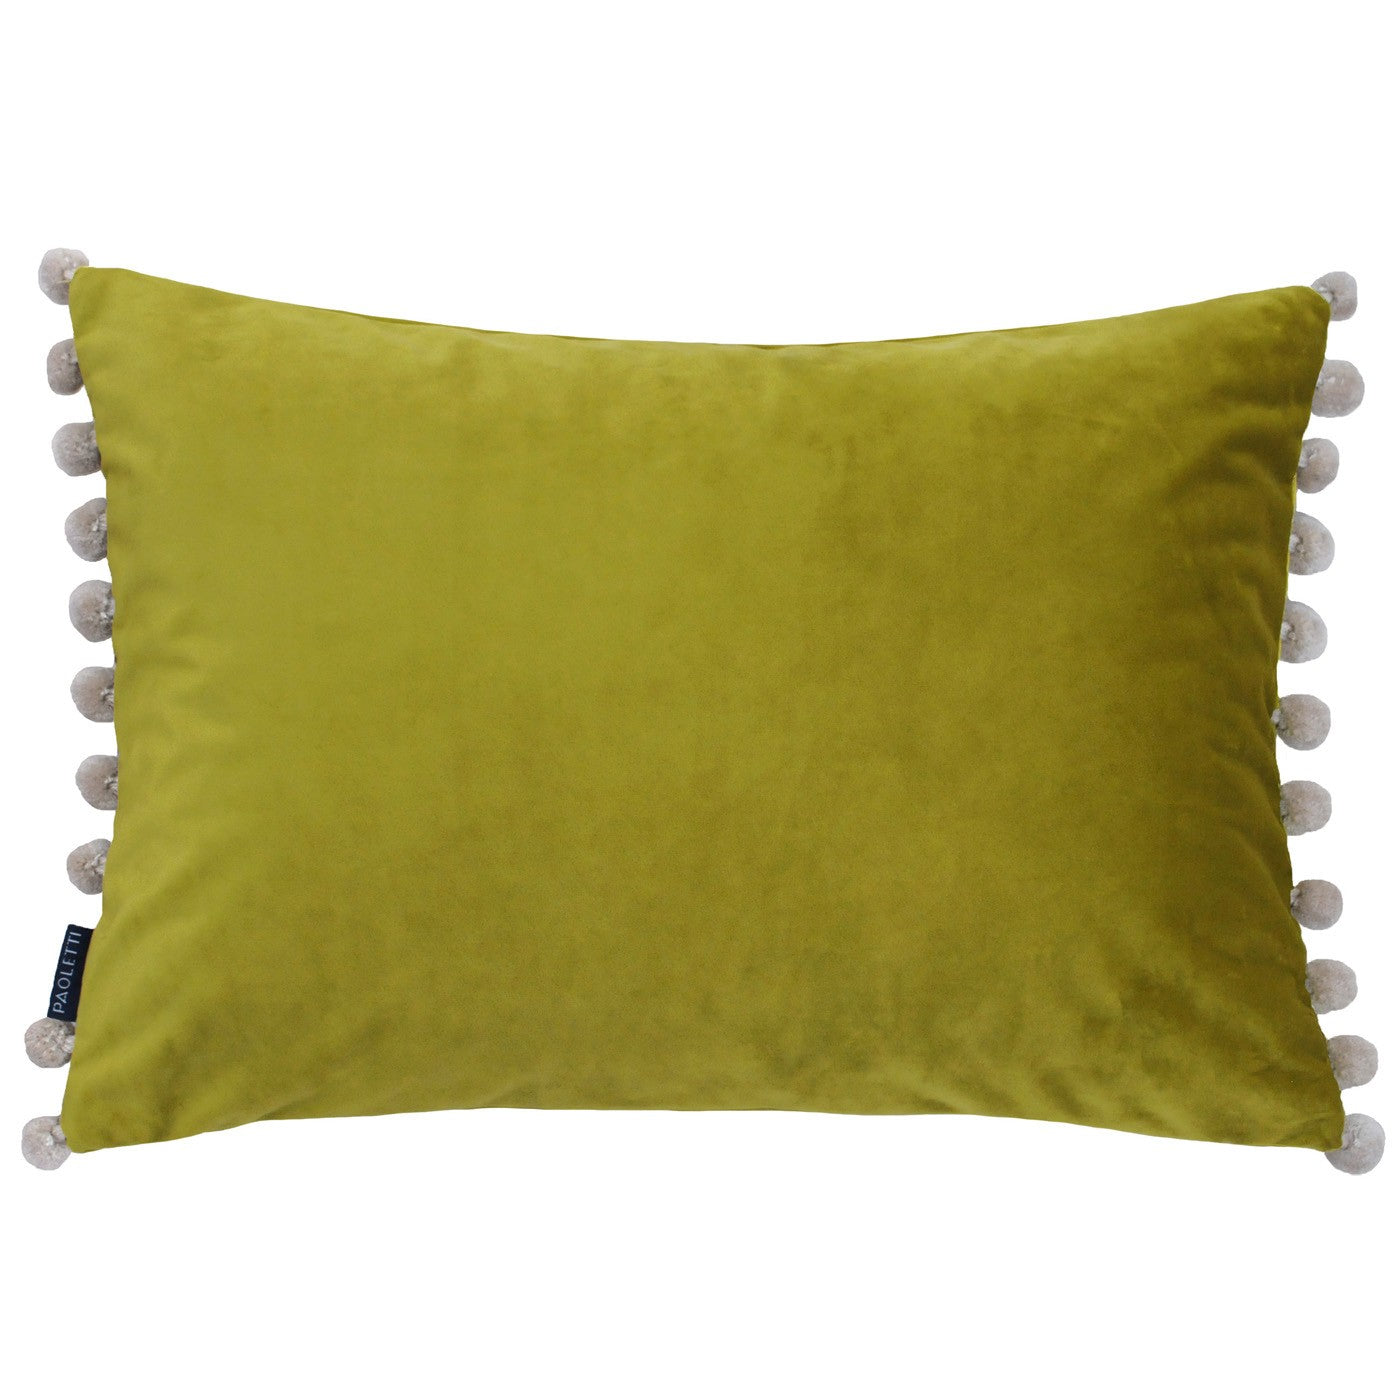 Bamboo Velvet Rectangle Cushion with Beige Pom Poms